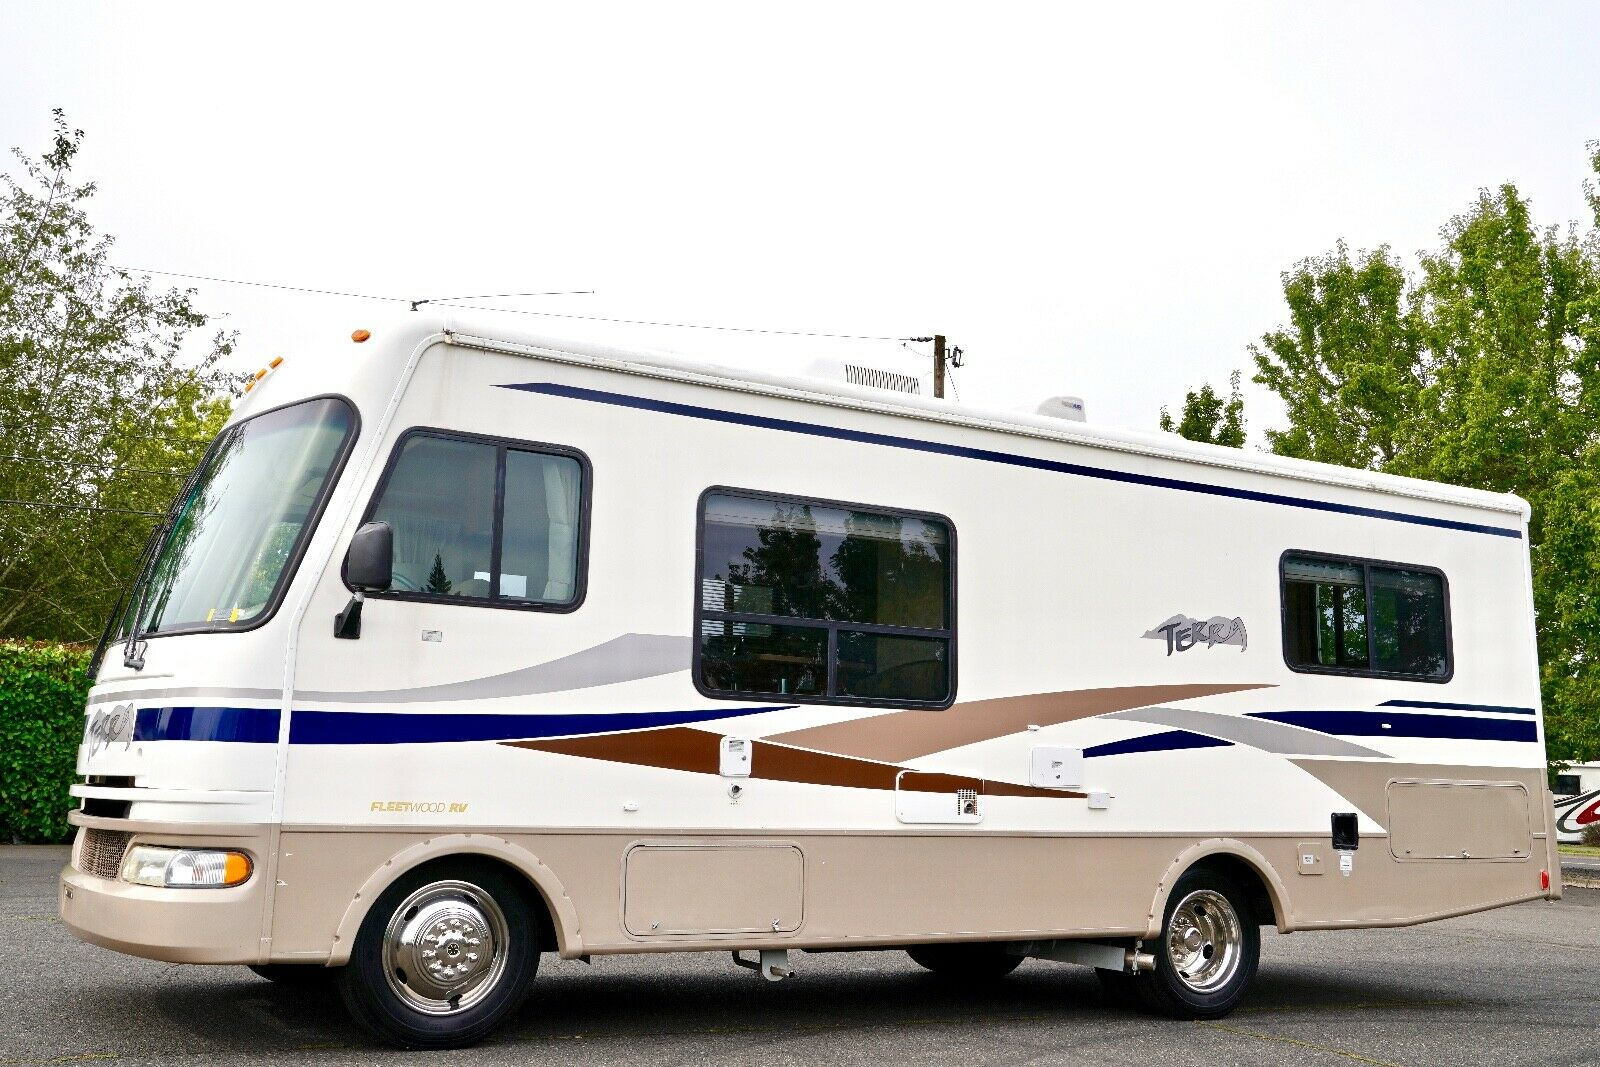 low miles 2004 Fleetwood 26Q camper for sale